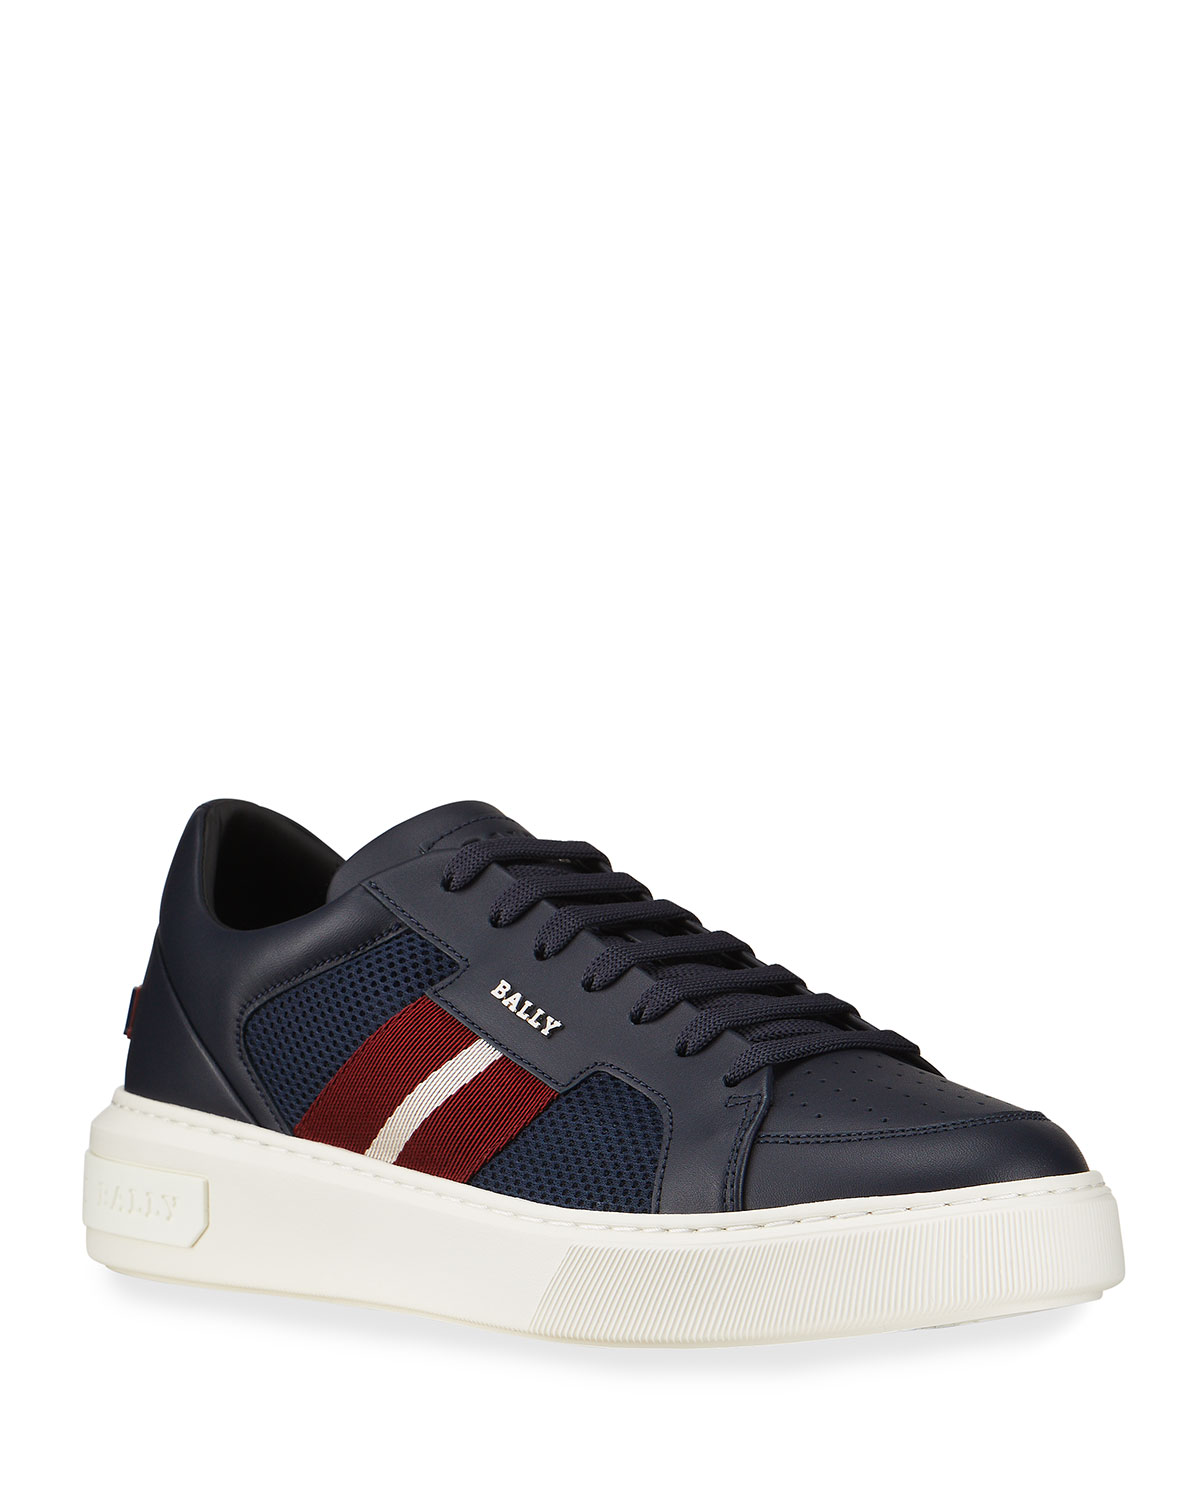 Bally MEN'S MELYST 29 TRAINSPOTTING MESH & LEATHER LOW-TOP SNEAKERS